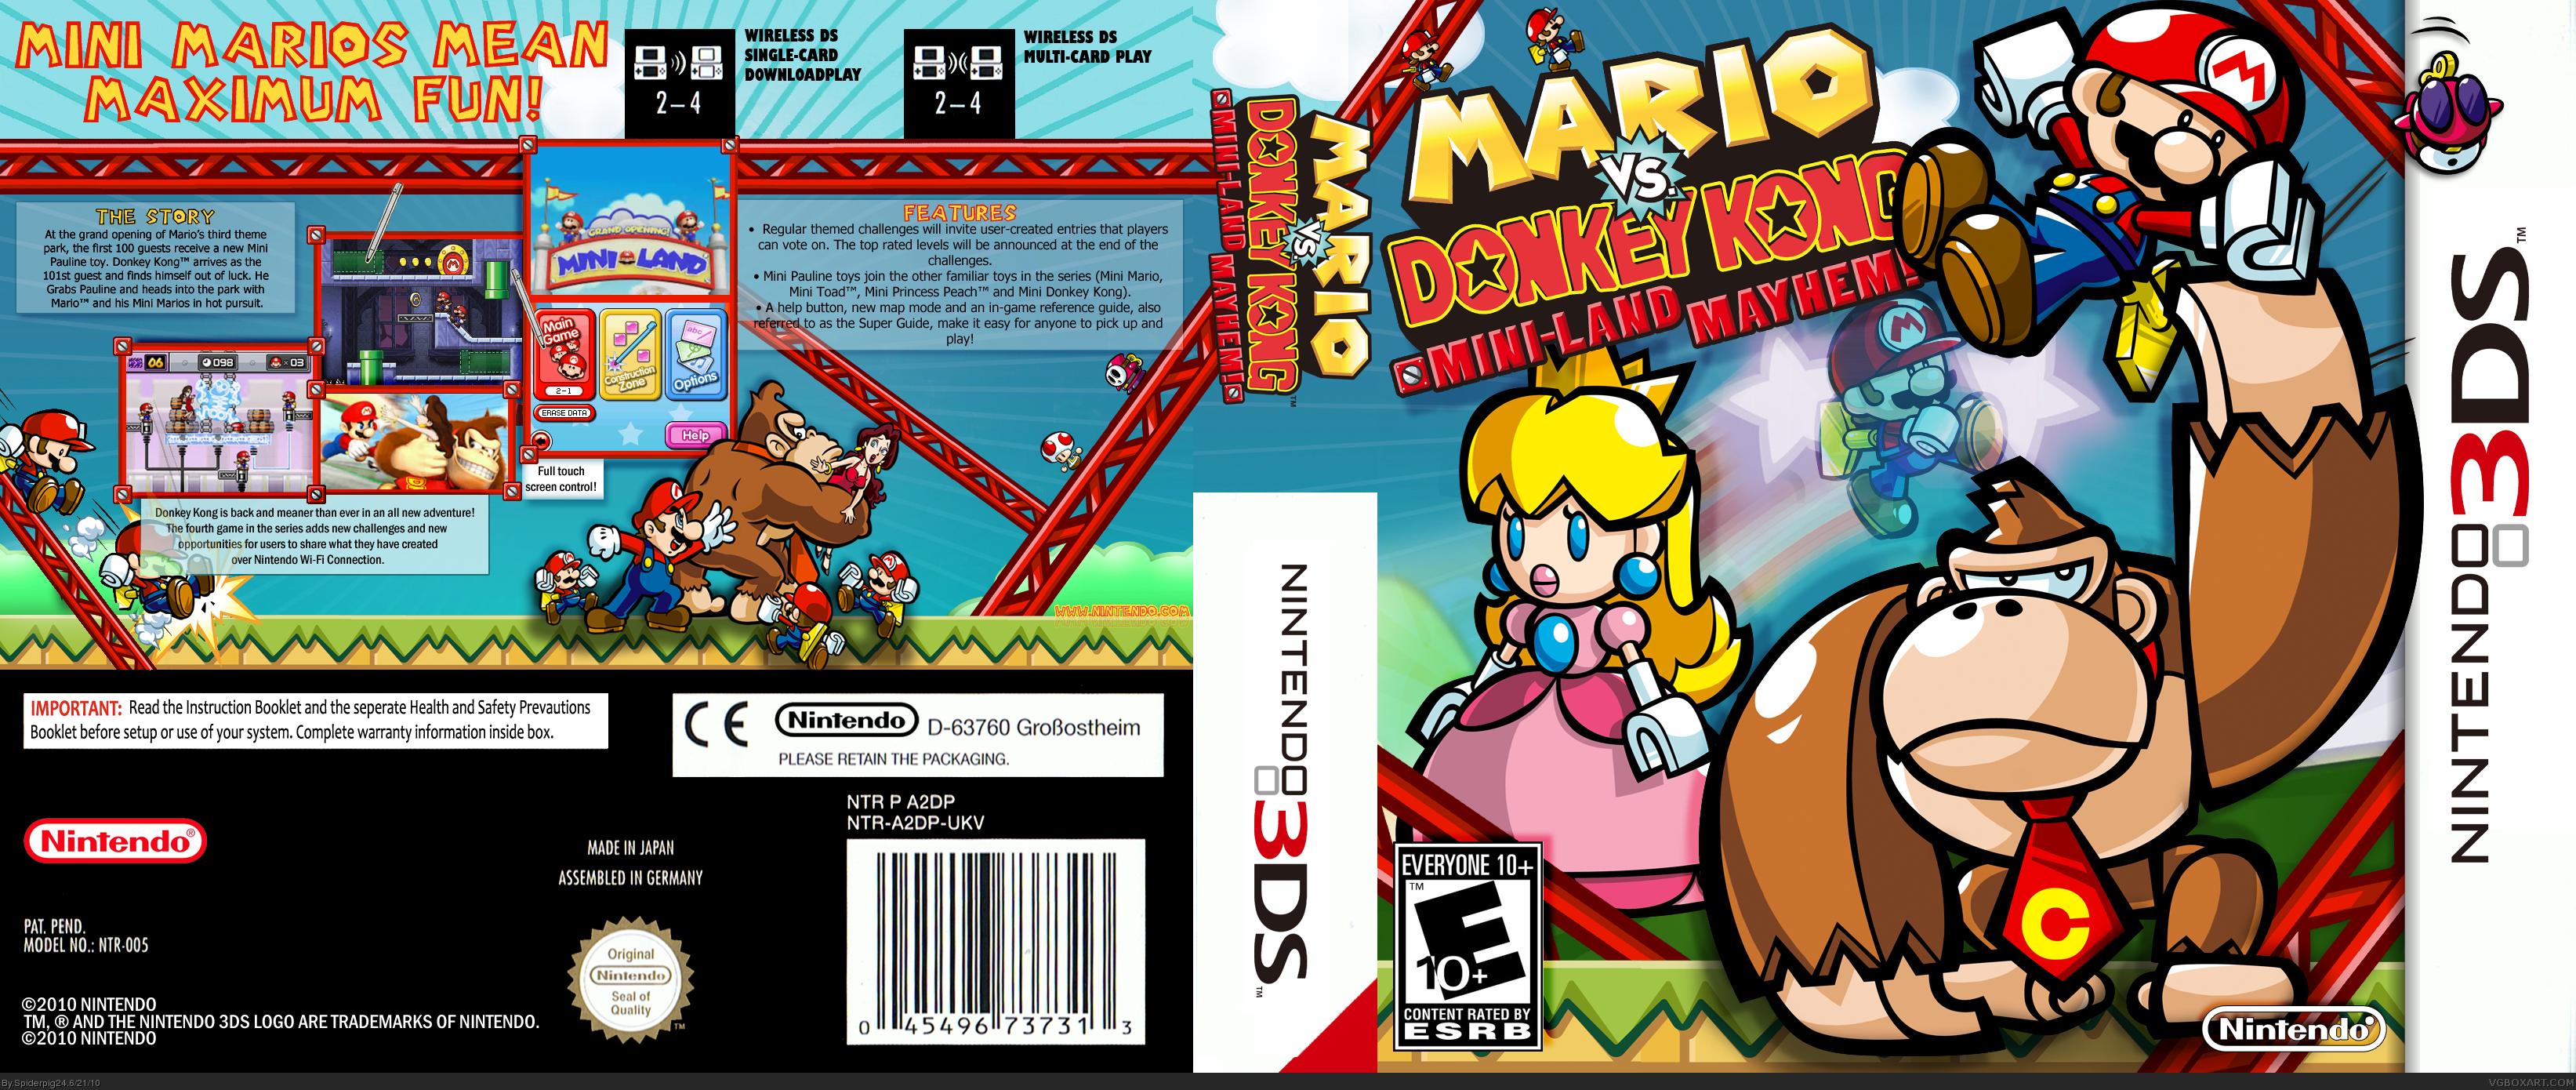 Mario vs. Donkey Kong: Mini-Land Mayhem! box cover